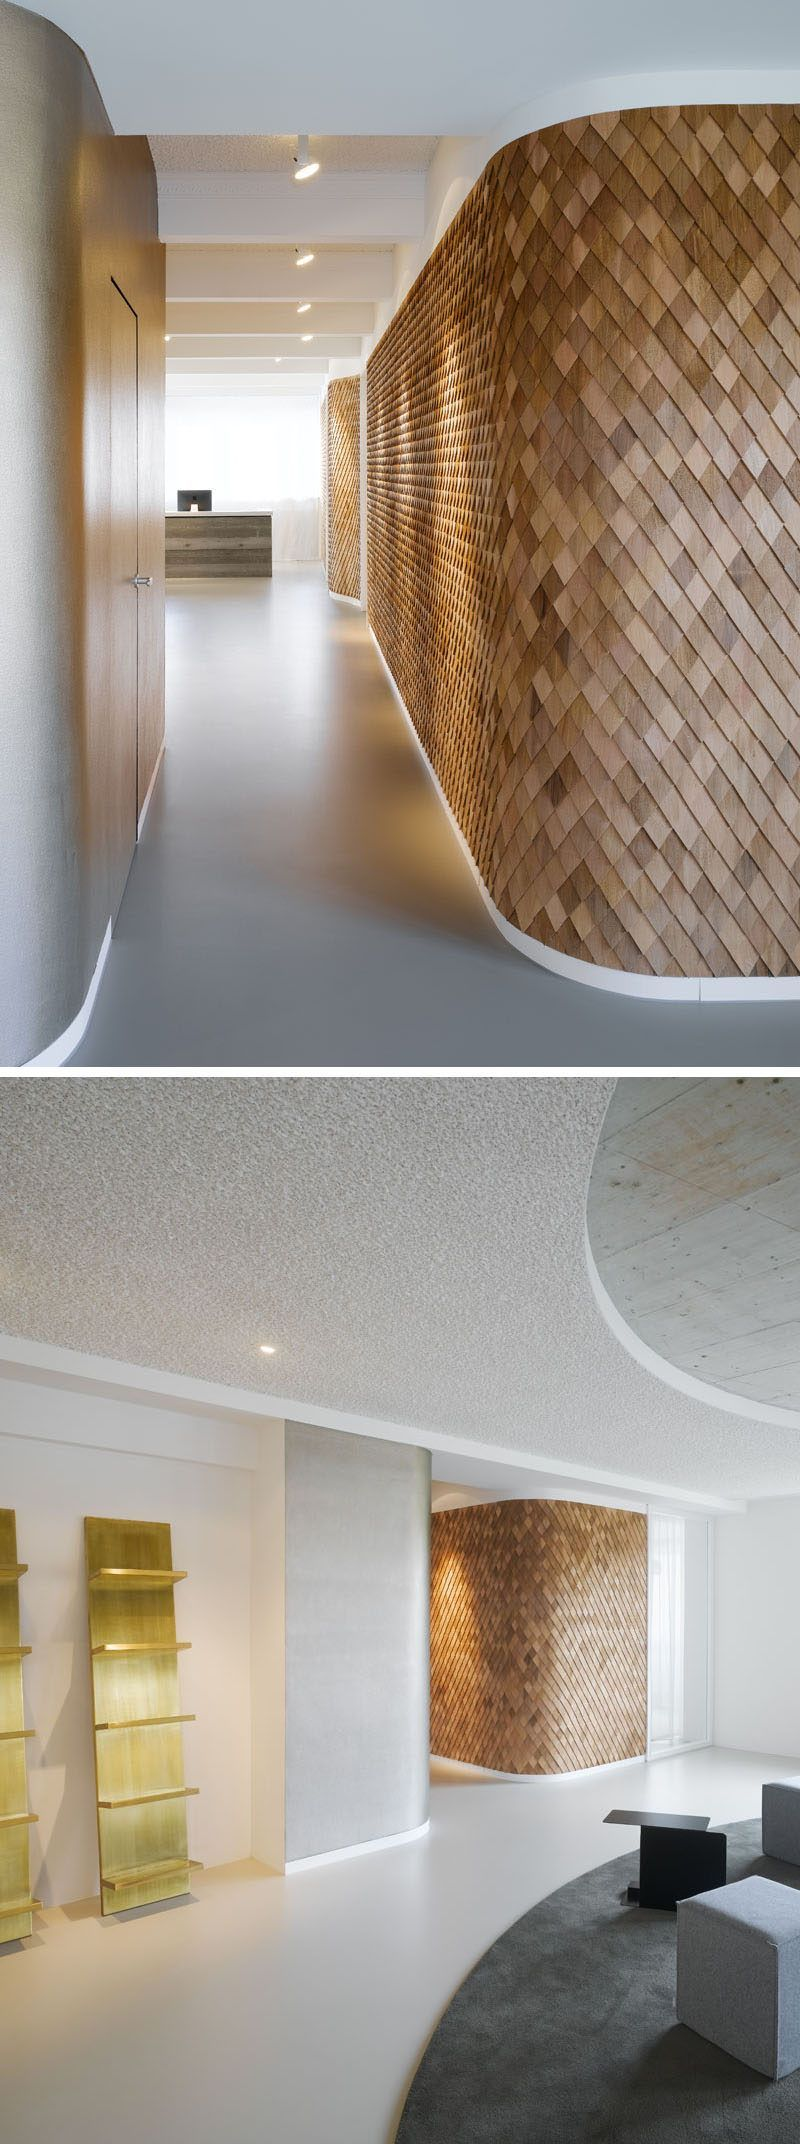 Best Using Wood Shingles To Create An Accent Wall Adds Warmth 400 x 300